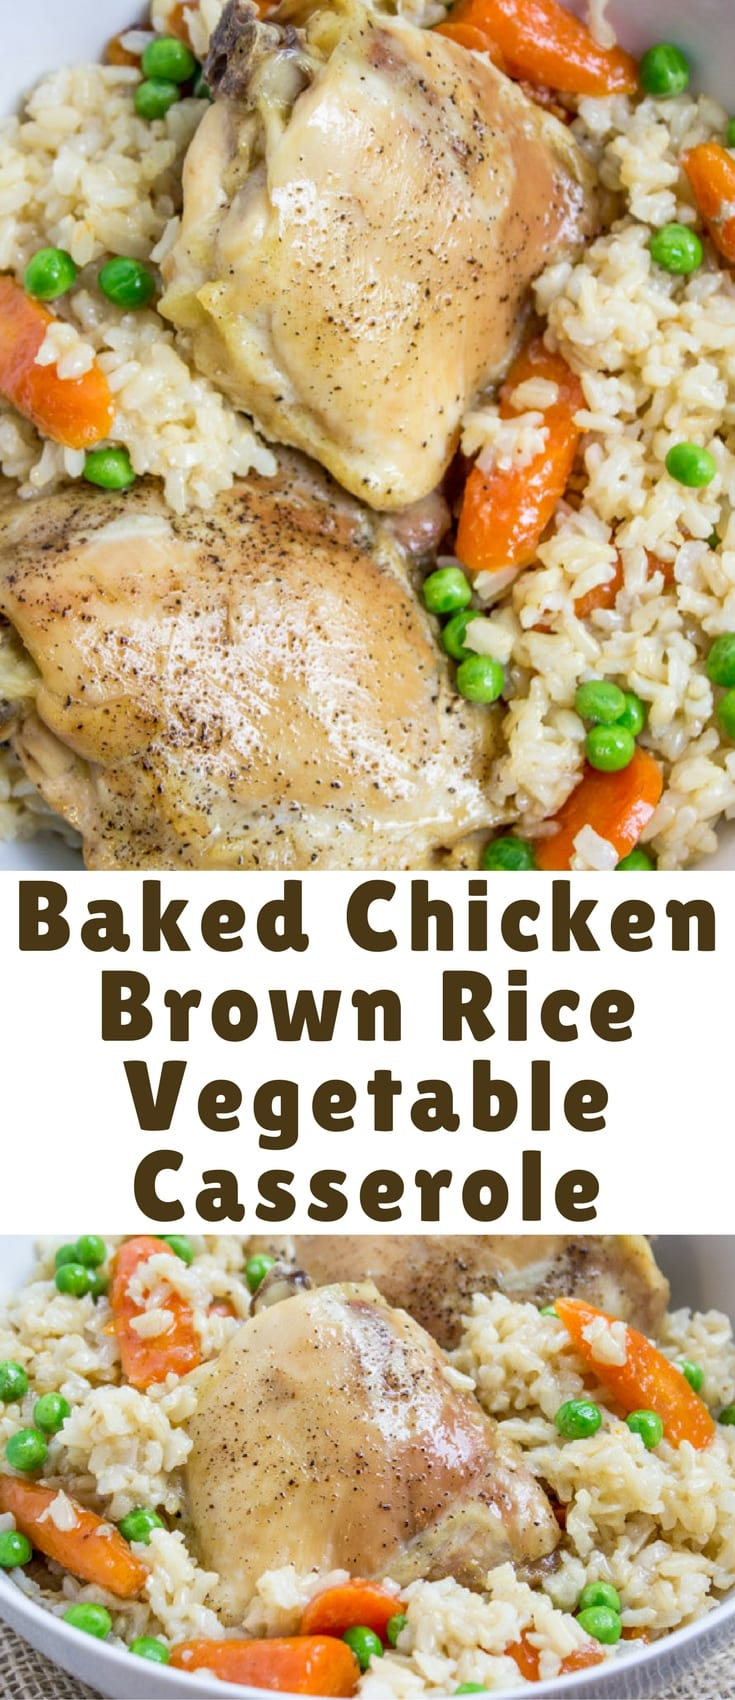 One Pan Baked Chicken Brown Rice Vegetable Casserole, served with Carrots and Peas, is healthy, flavorful and involves almost no clean-up! Read more at: Baked Chicken Brown Rice Vegetable Casserole http://dinnerthendessert.com/one-pan-baked-chicken-brown-rice-vegetable-casserole/